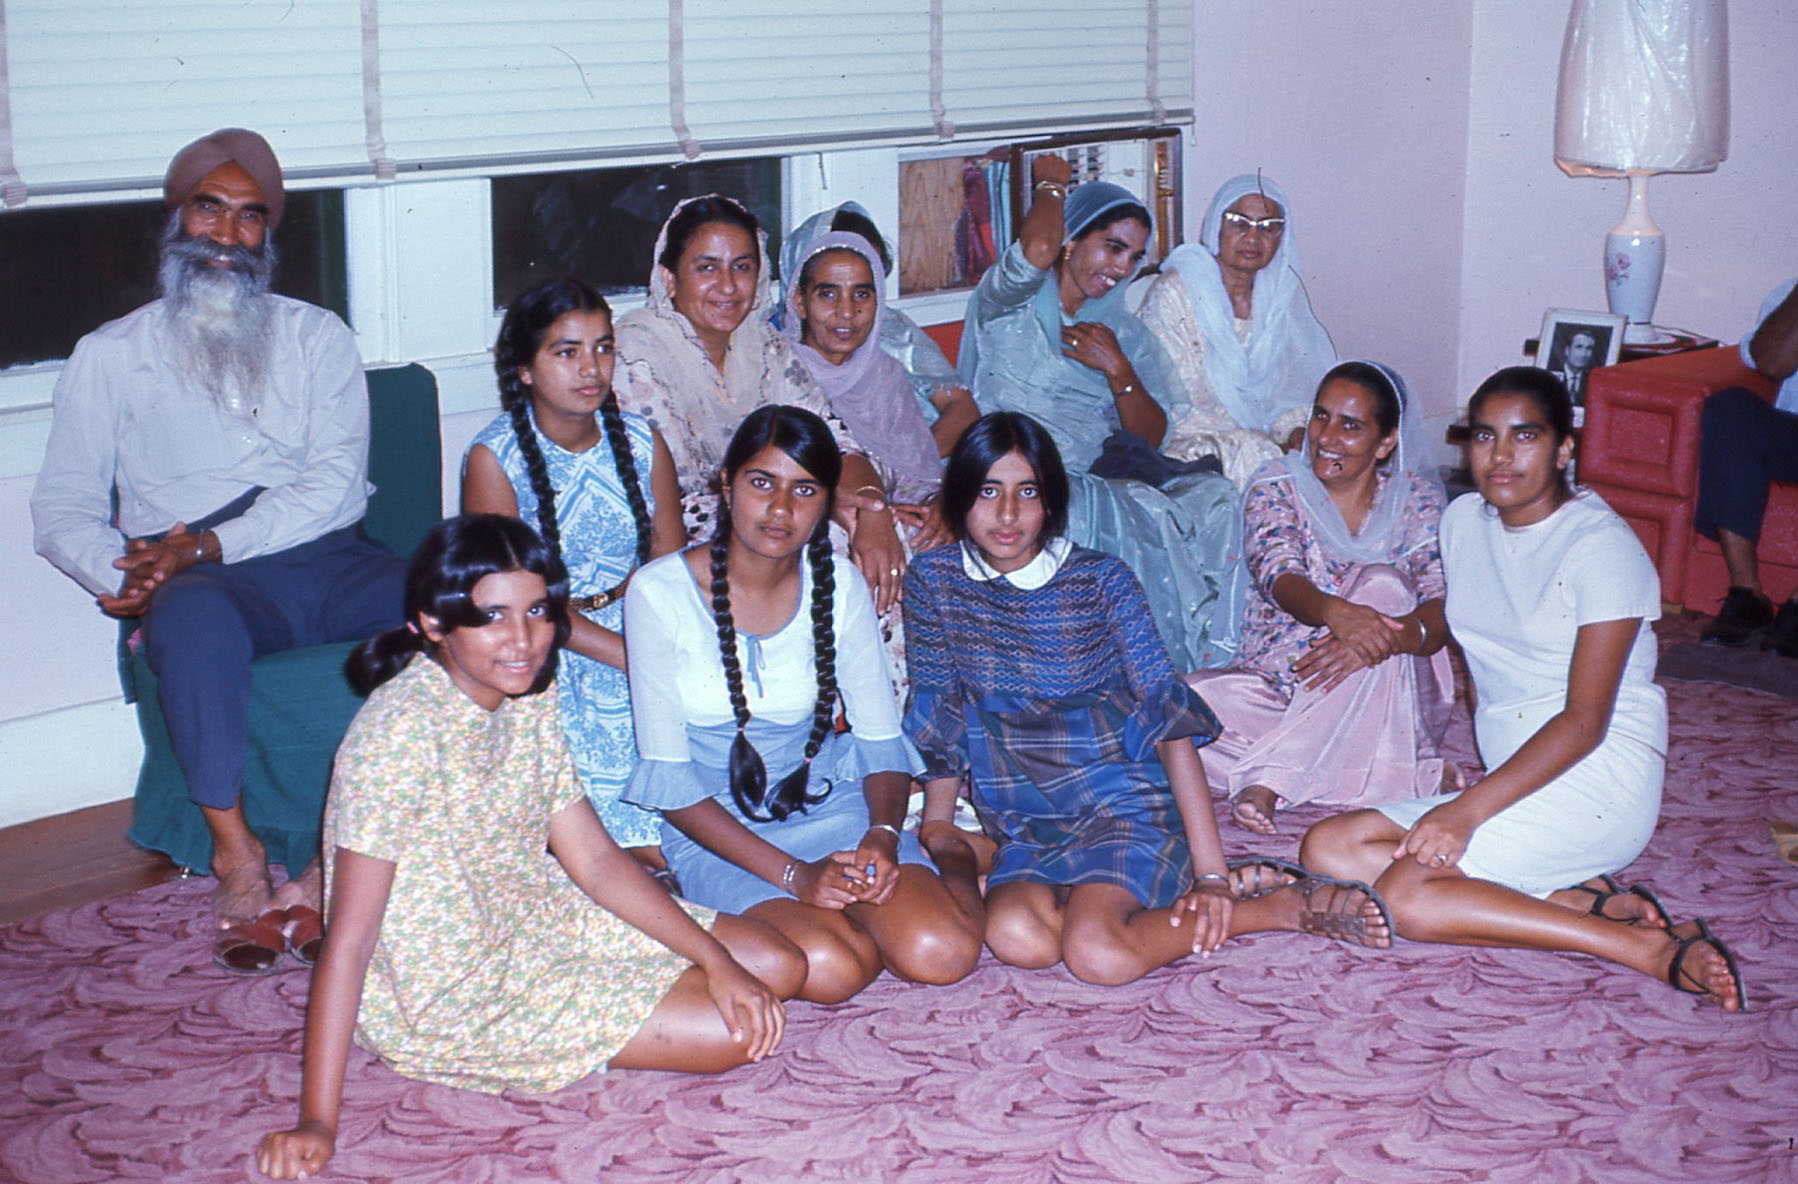 Extended Punjabi family at home in Yuba City, 1967